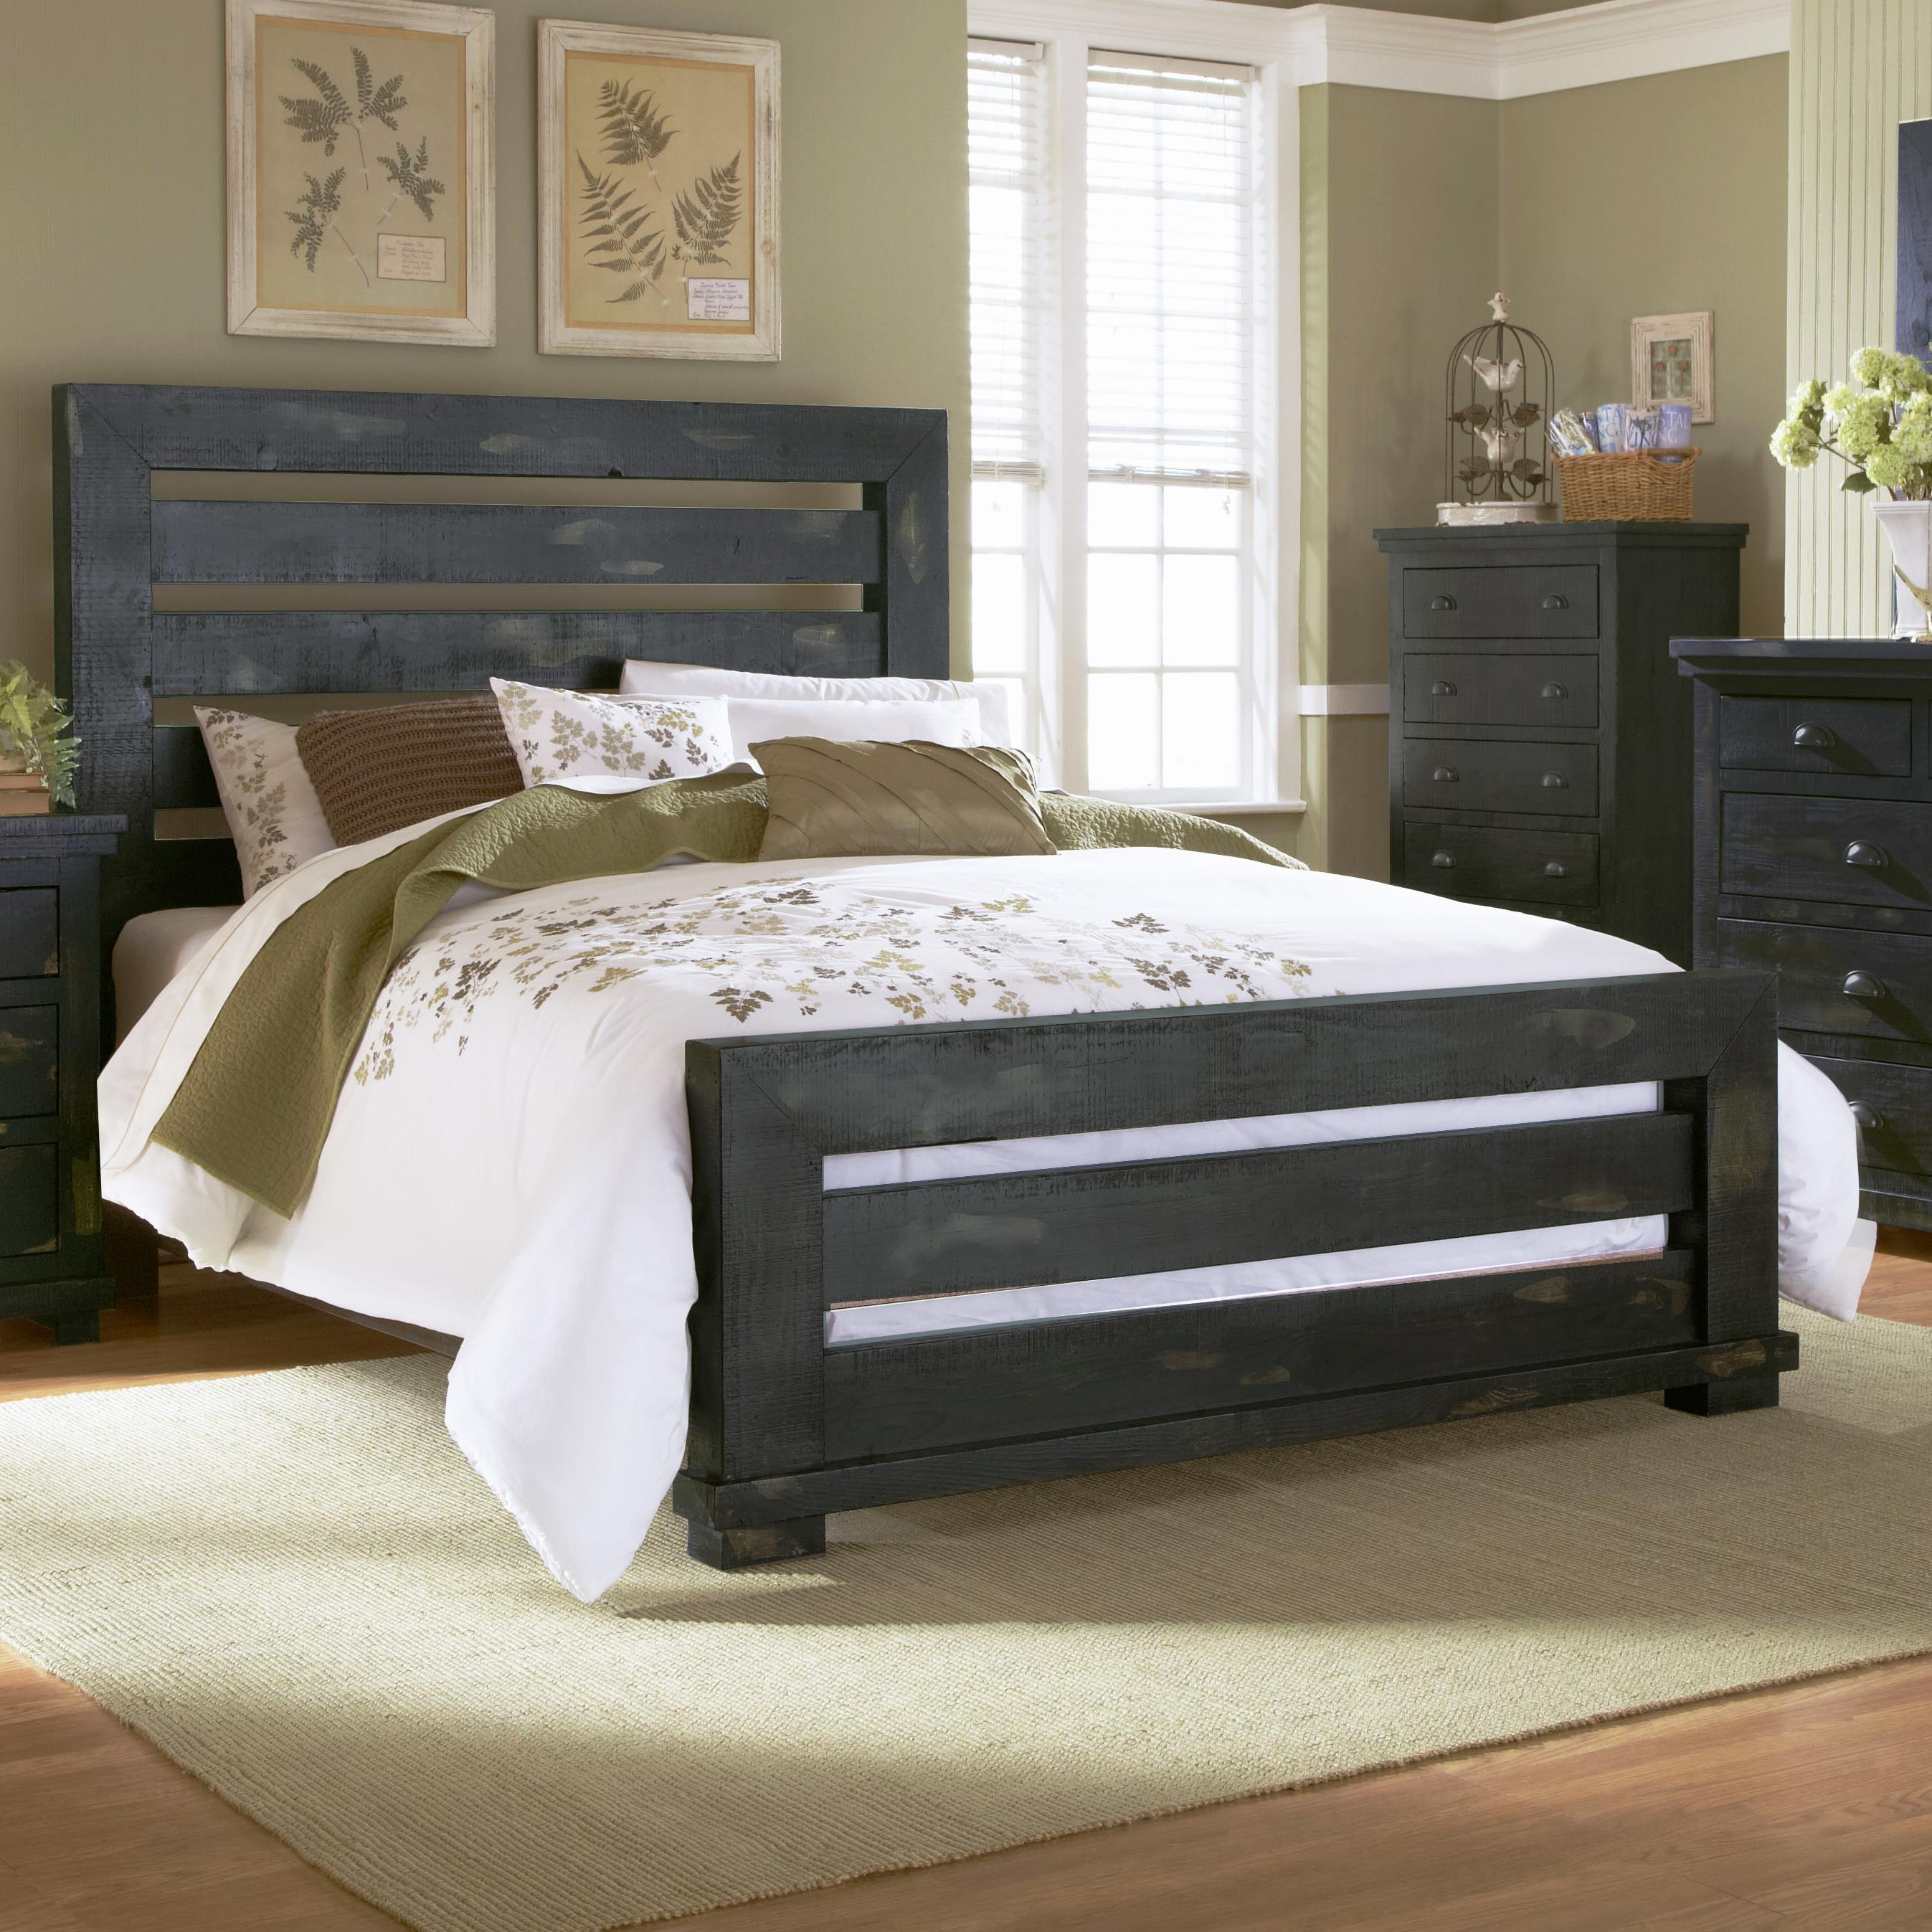 Progressive furniture willow queen slat bed with distressed pine frame vandrie home for Distressed pine bedroom furniture